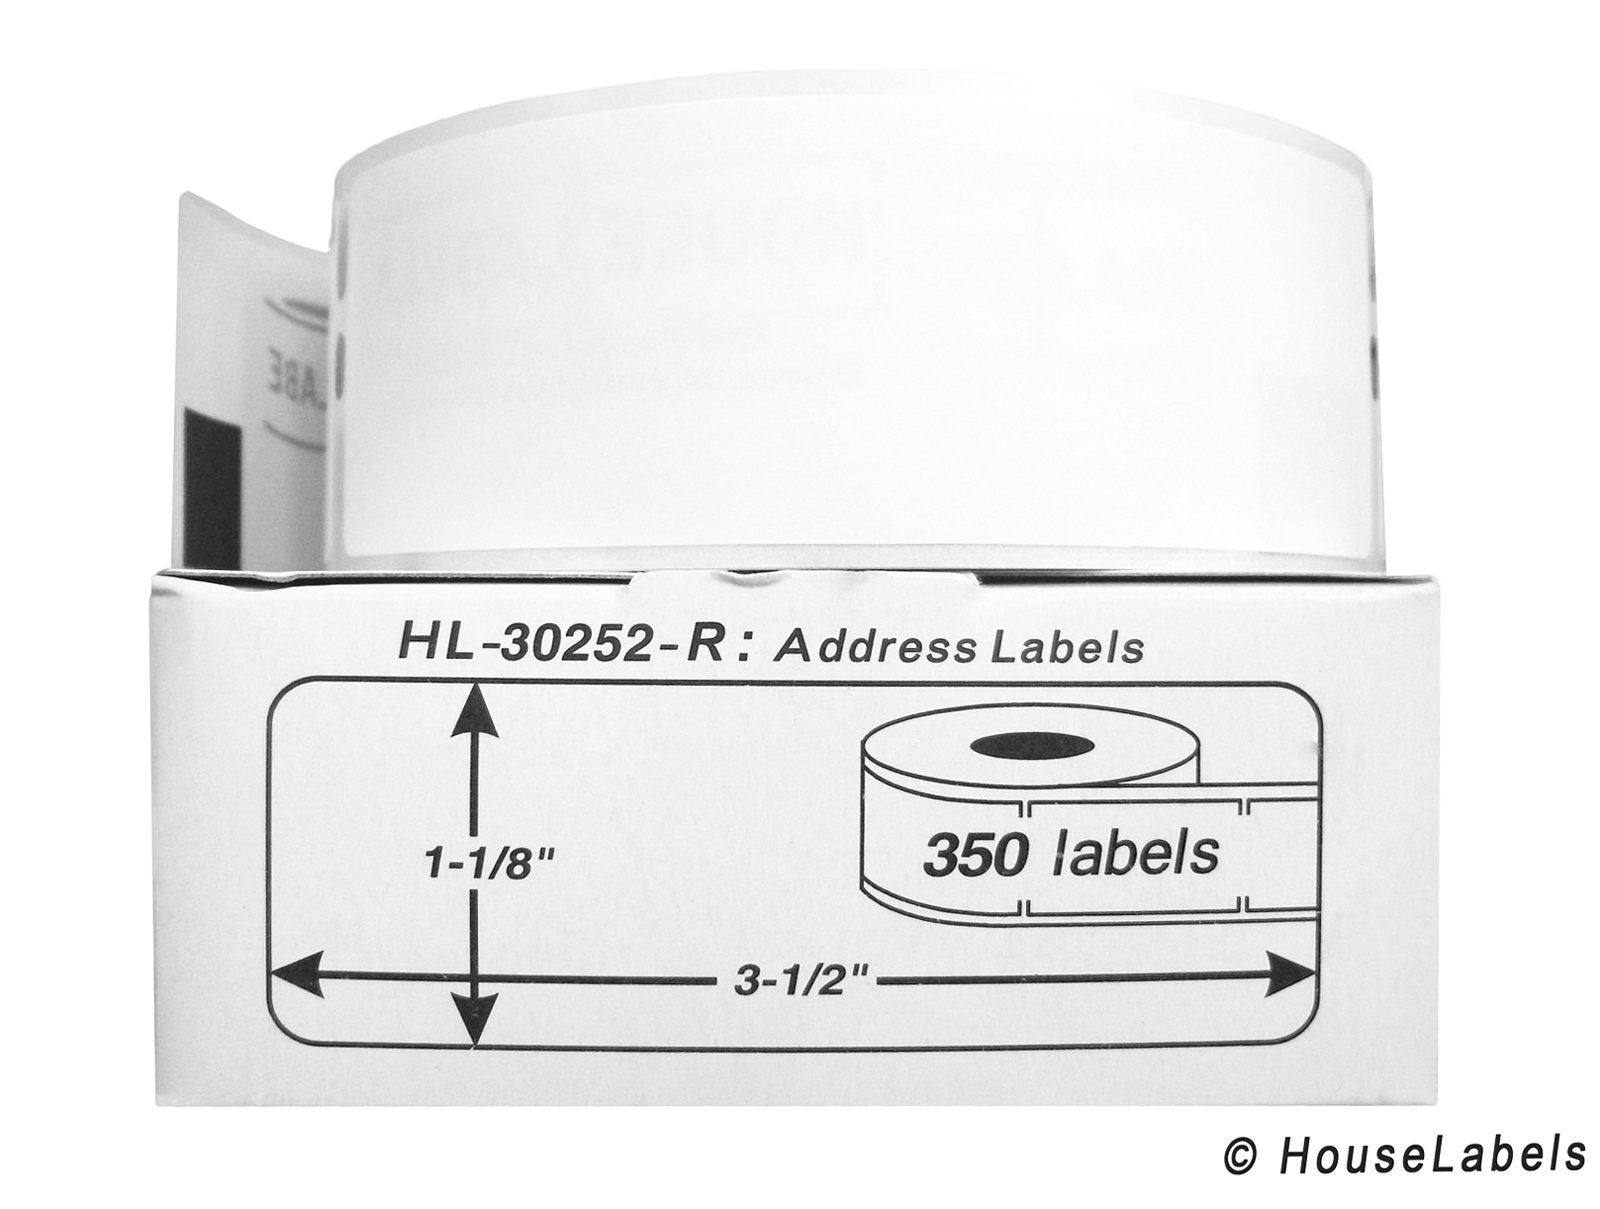 54 Rolls; 350 Labels per Roll of DYMO-Compatible 30252-R Removable Address Labels (1-1/8'' x 3-1/2'') - BPA Free! by HouseLabels